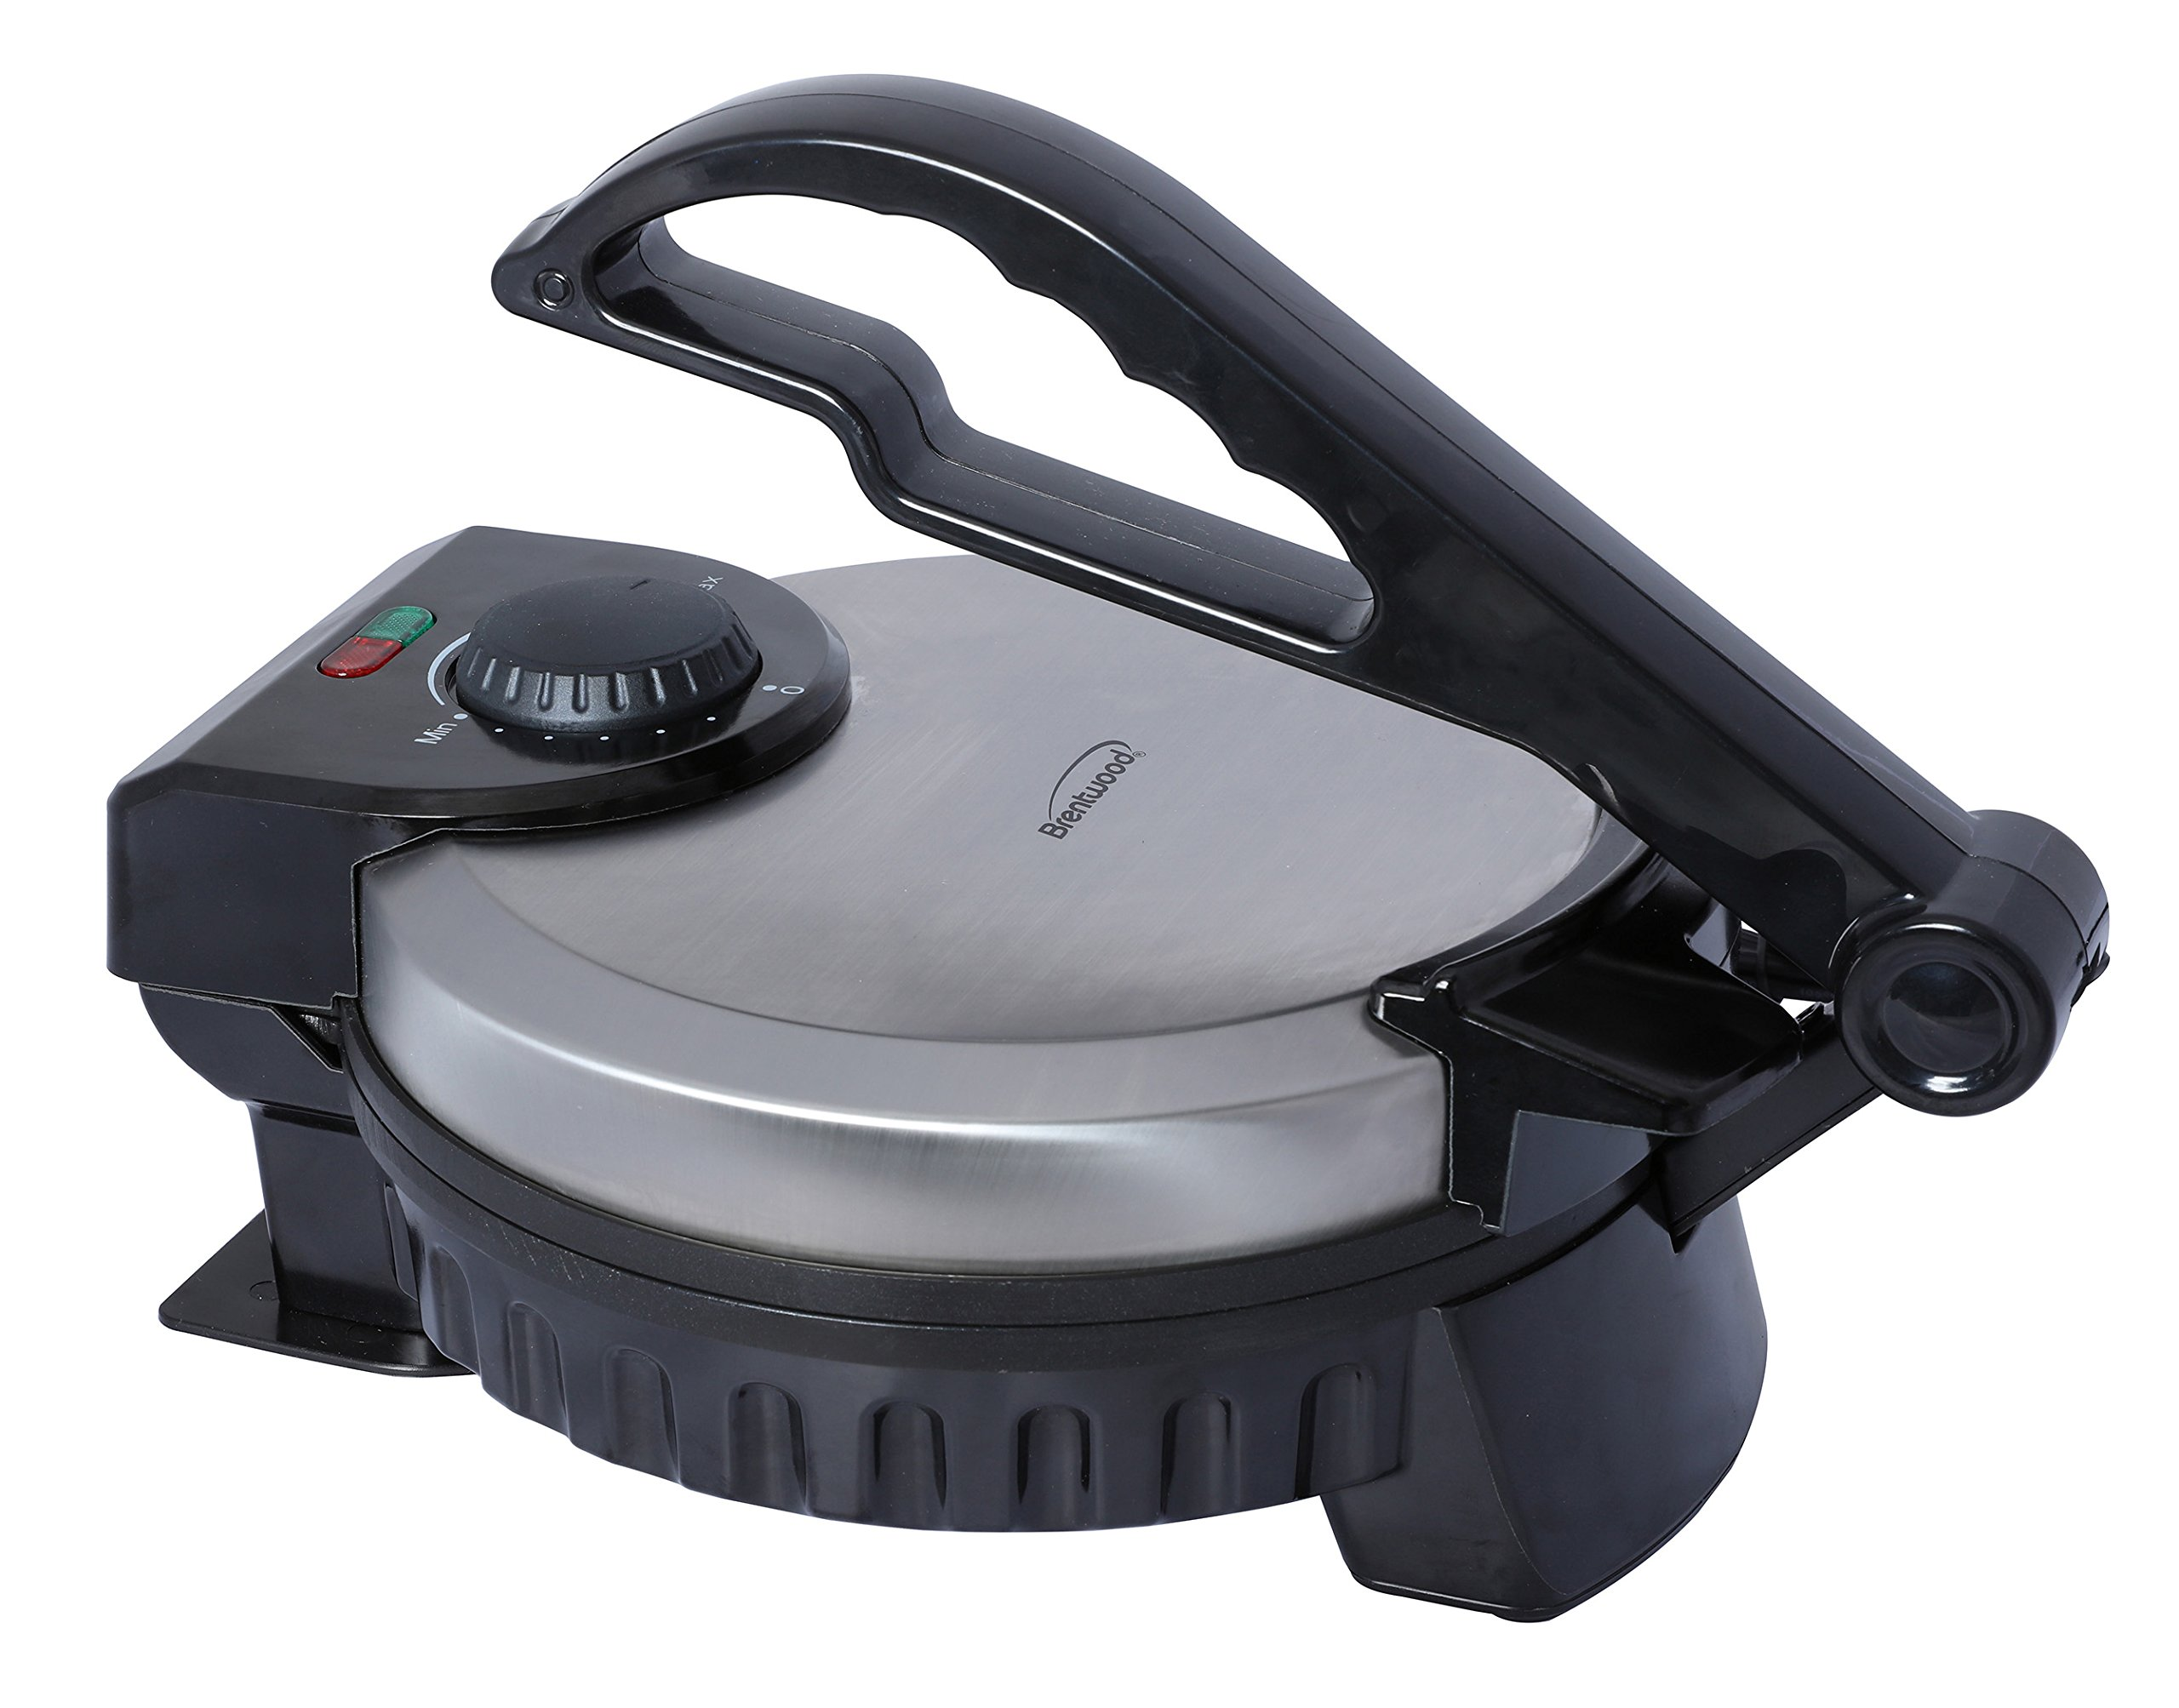 Brentwood TS-127 Stainless Steel Non-Stick Electric Tortilla Maker, 8-Inch by Brentwood